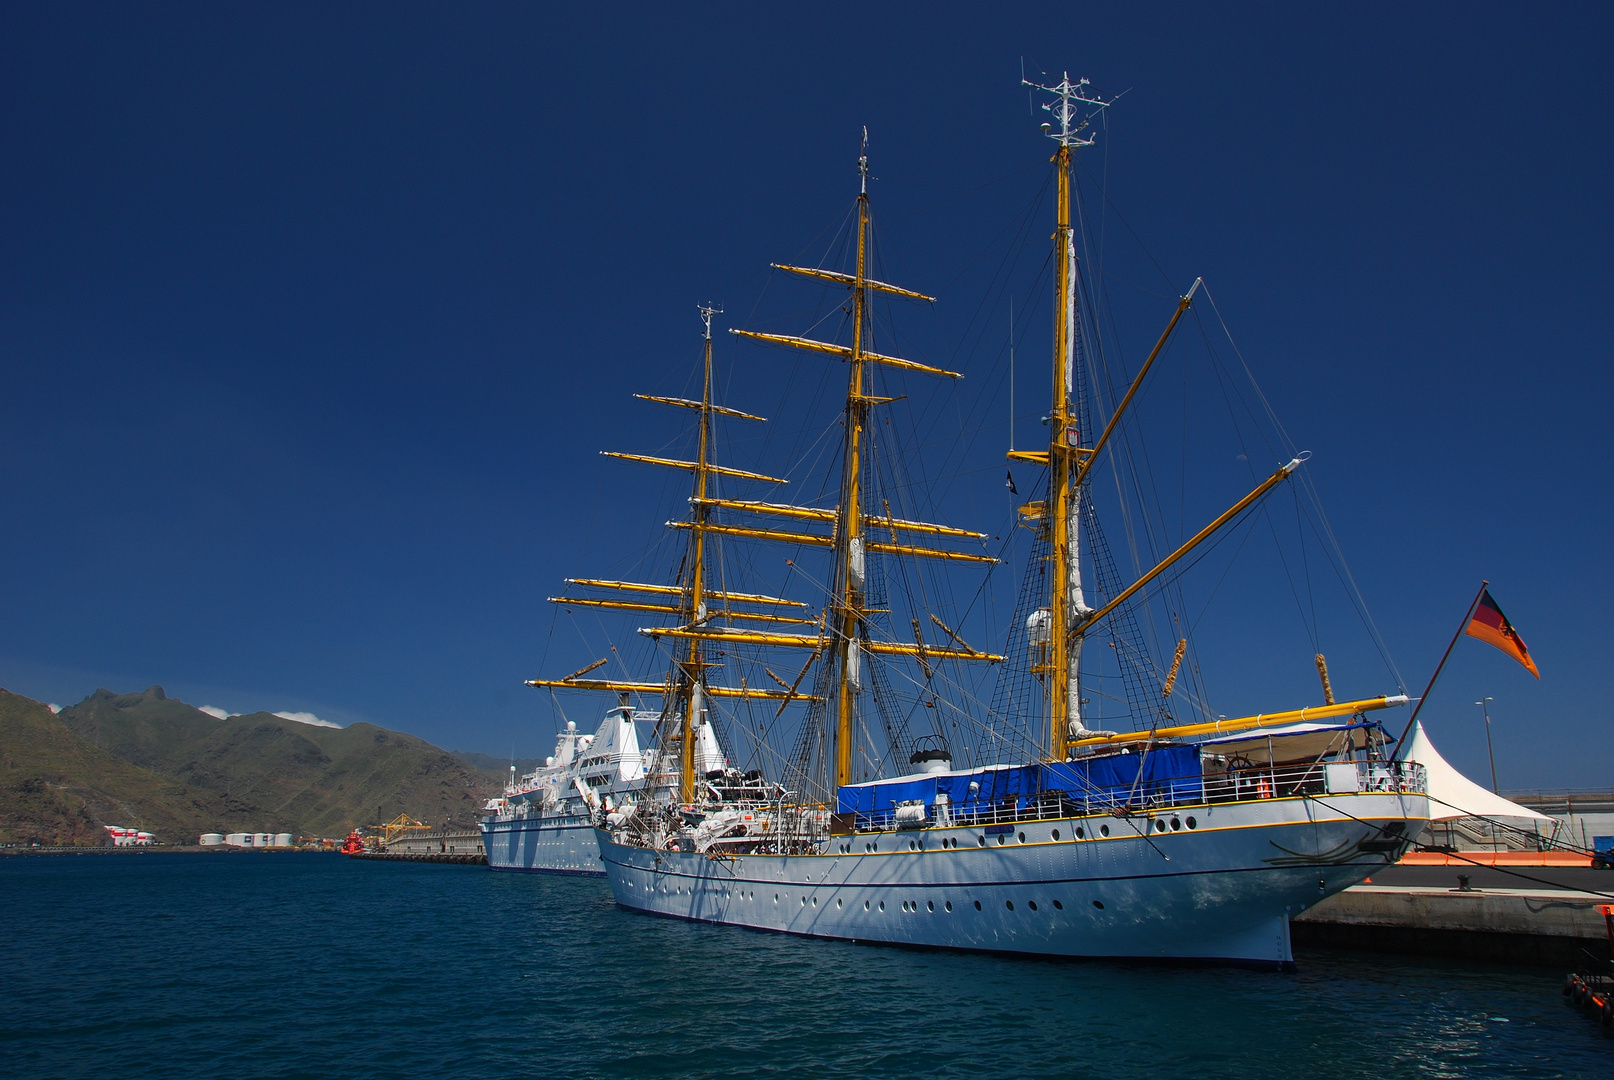 Gorch Fock in Santa Cruz de Tenerife